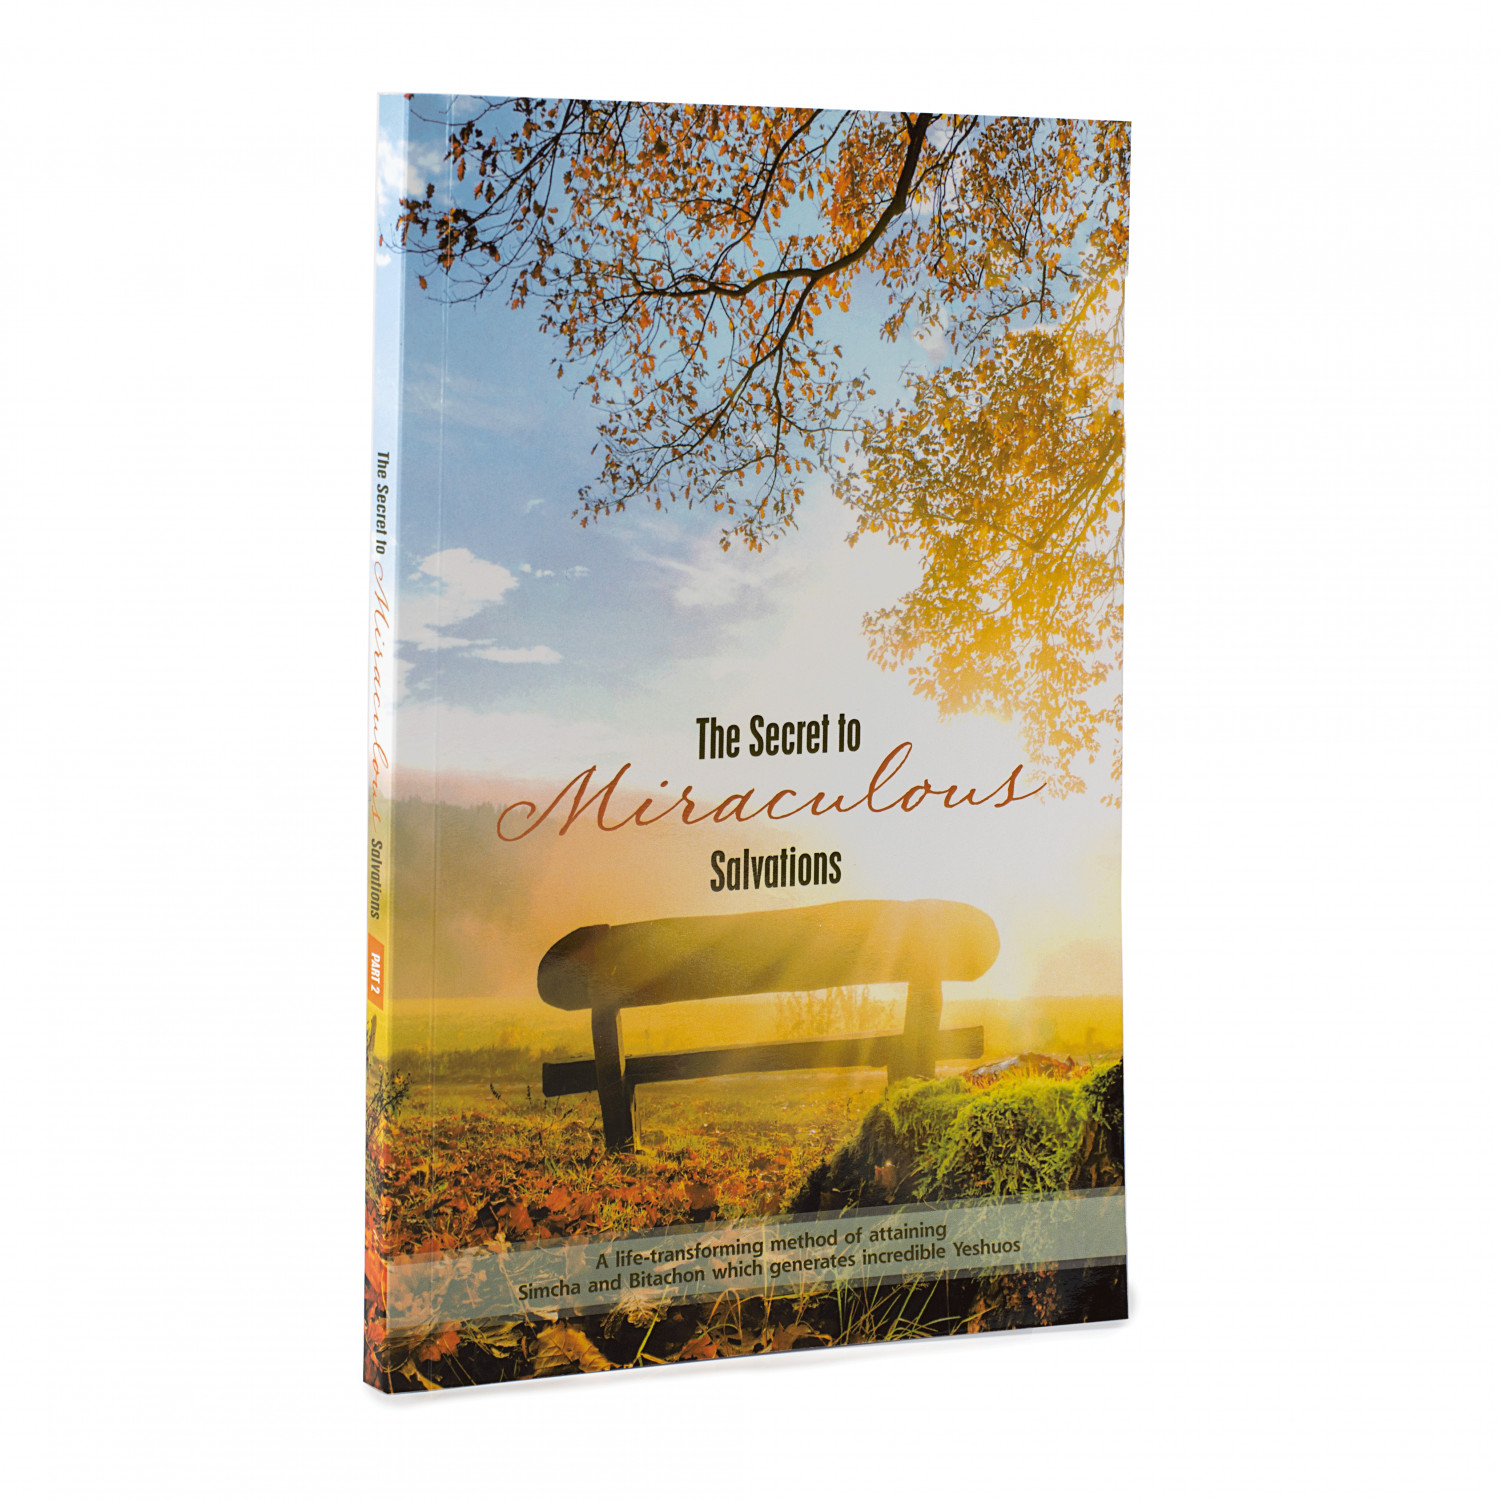 The Secret to Miraculous Salvations Volume 1 - Paperback by C. T. Friedman